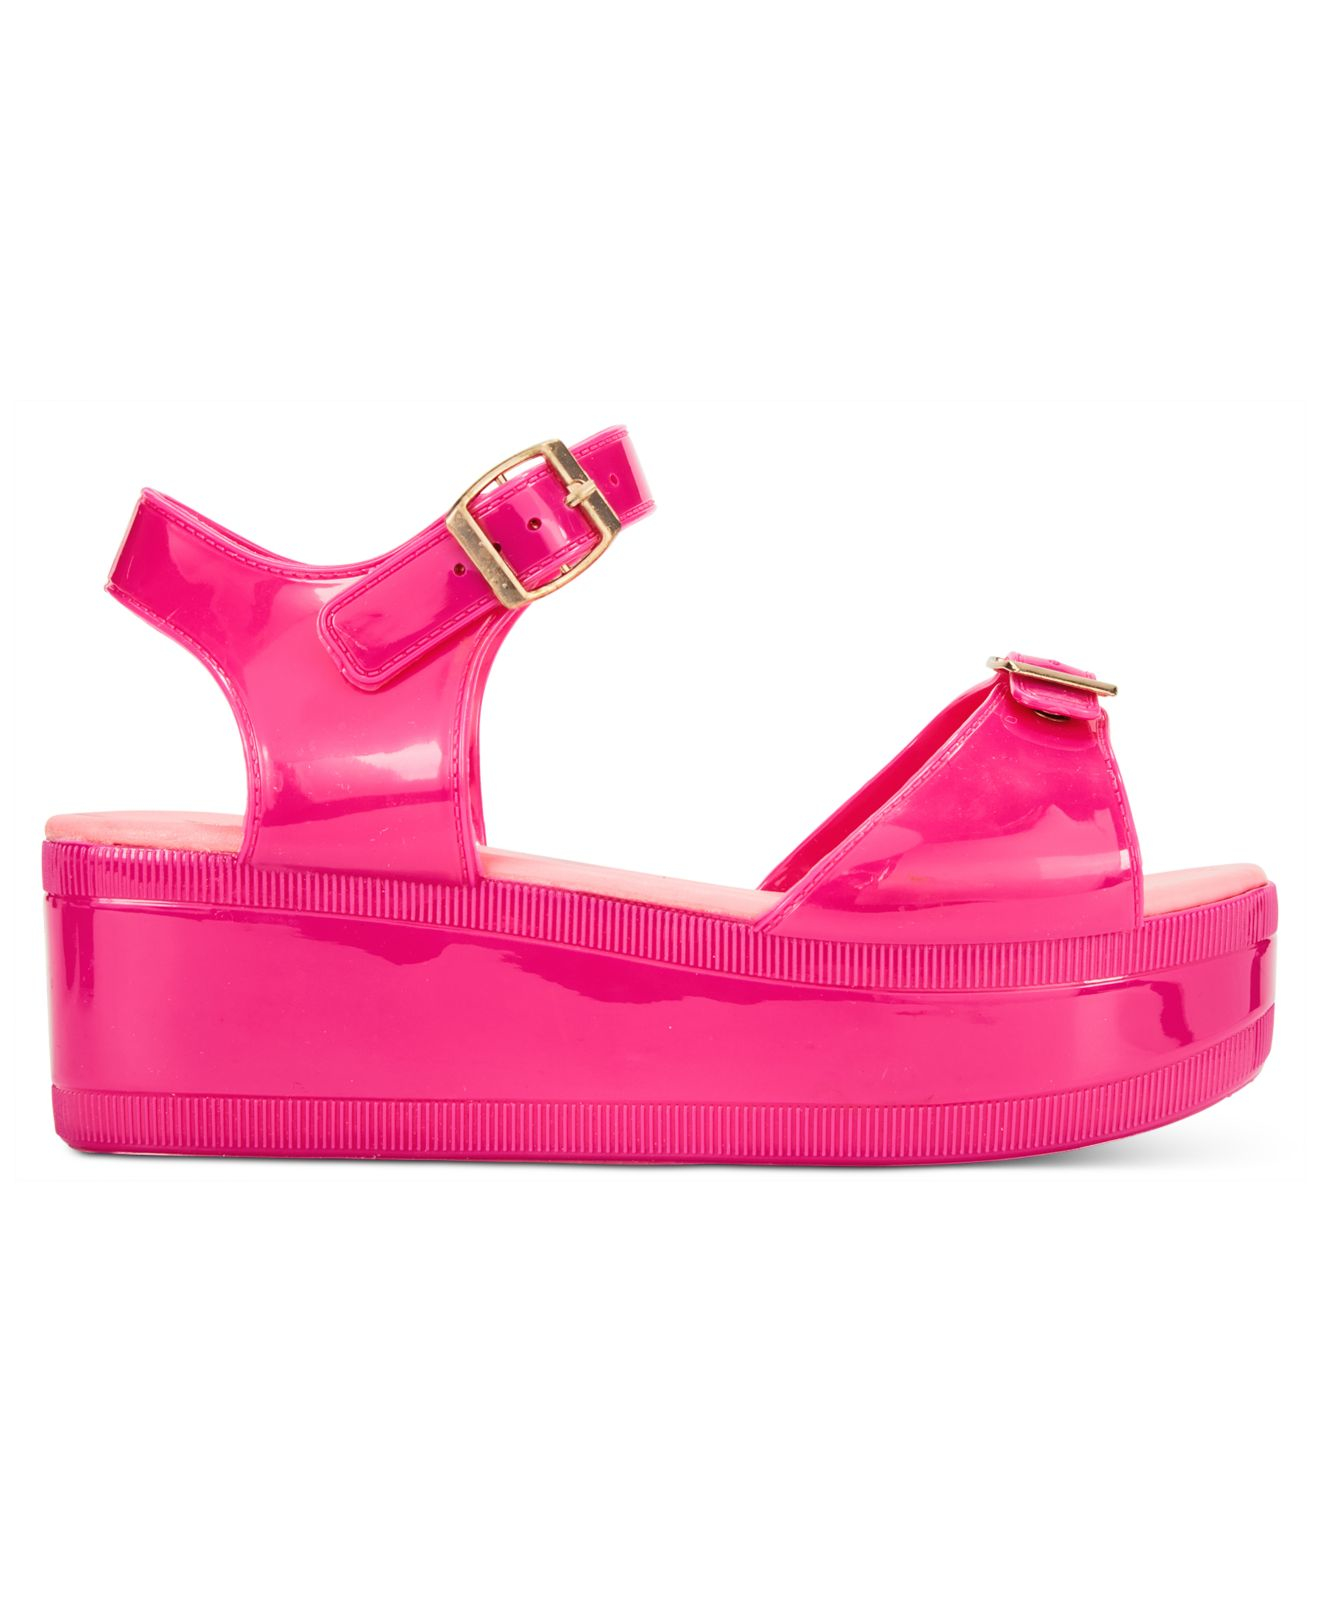 fc3e1404a53 Lyst - Wanted Gumdrop Flatform Jelly Sandals in Pink